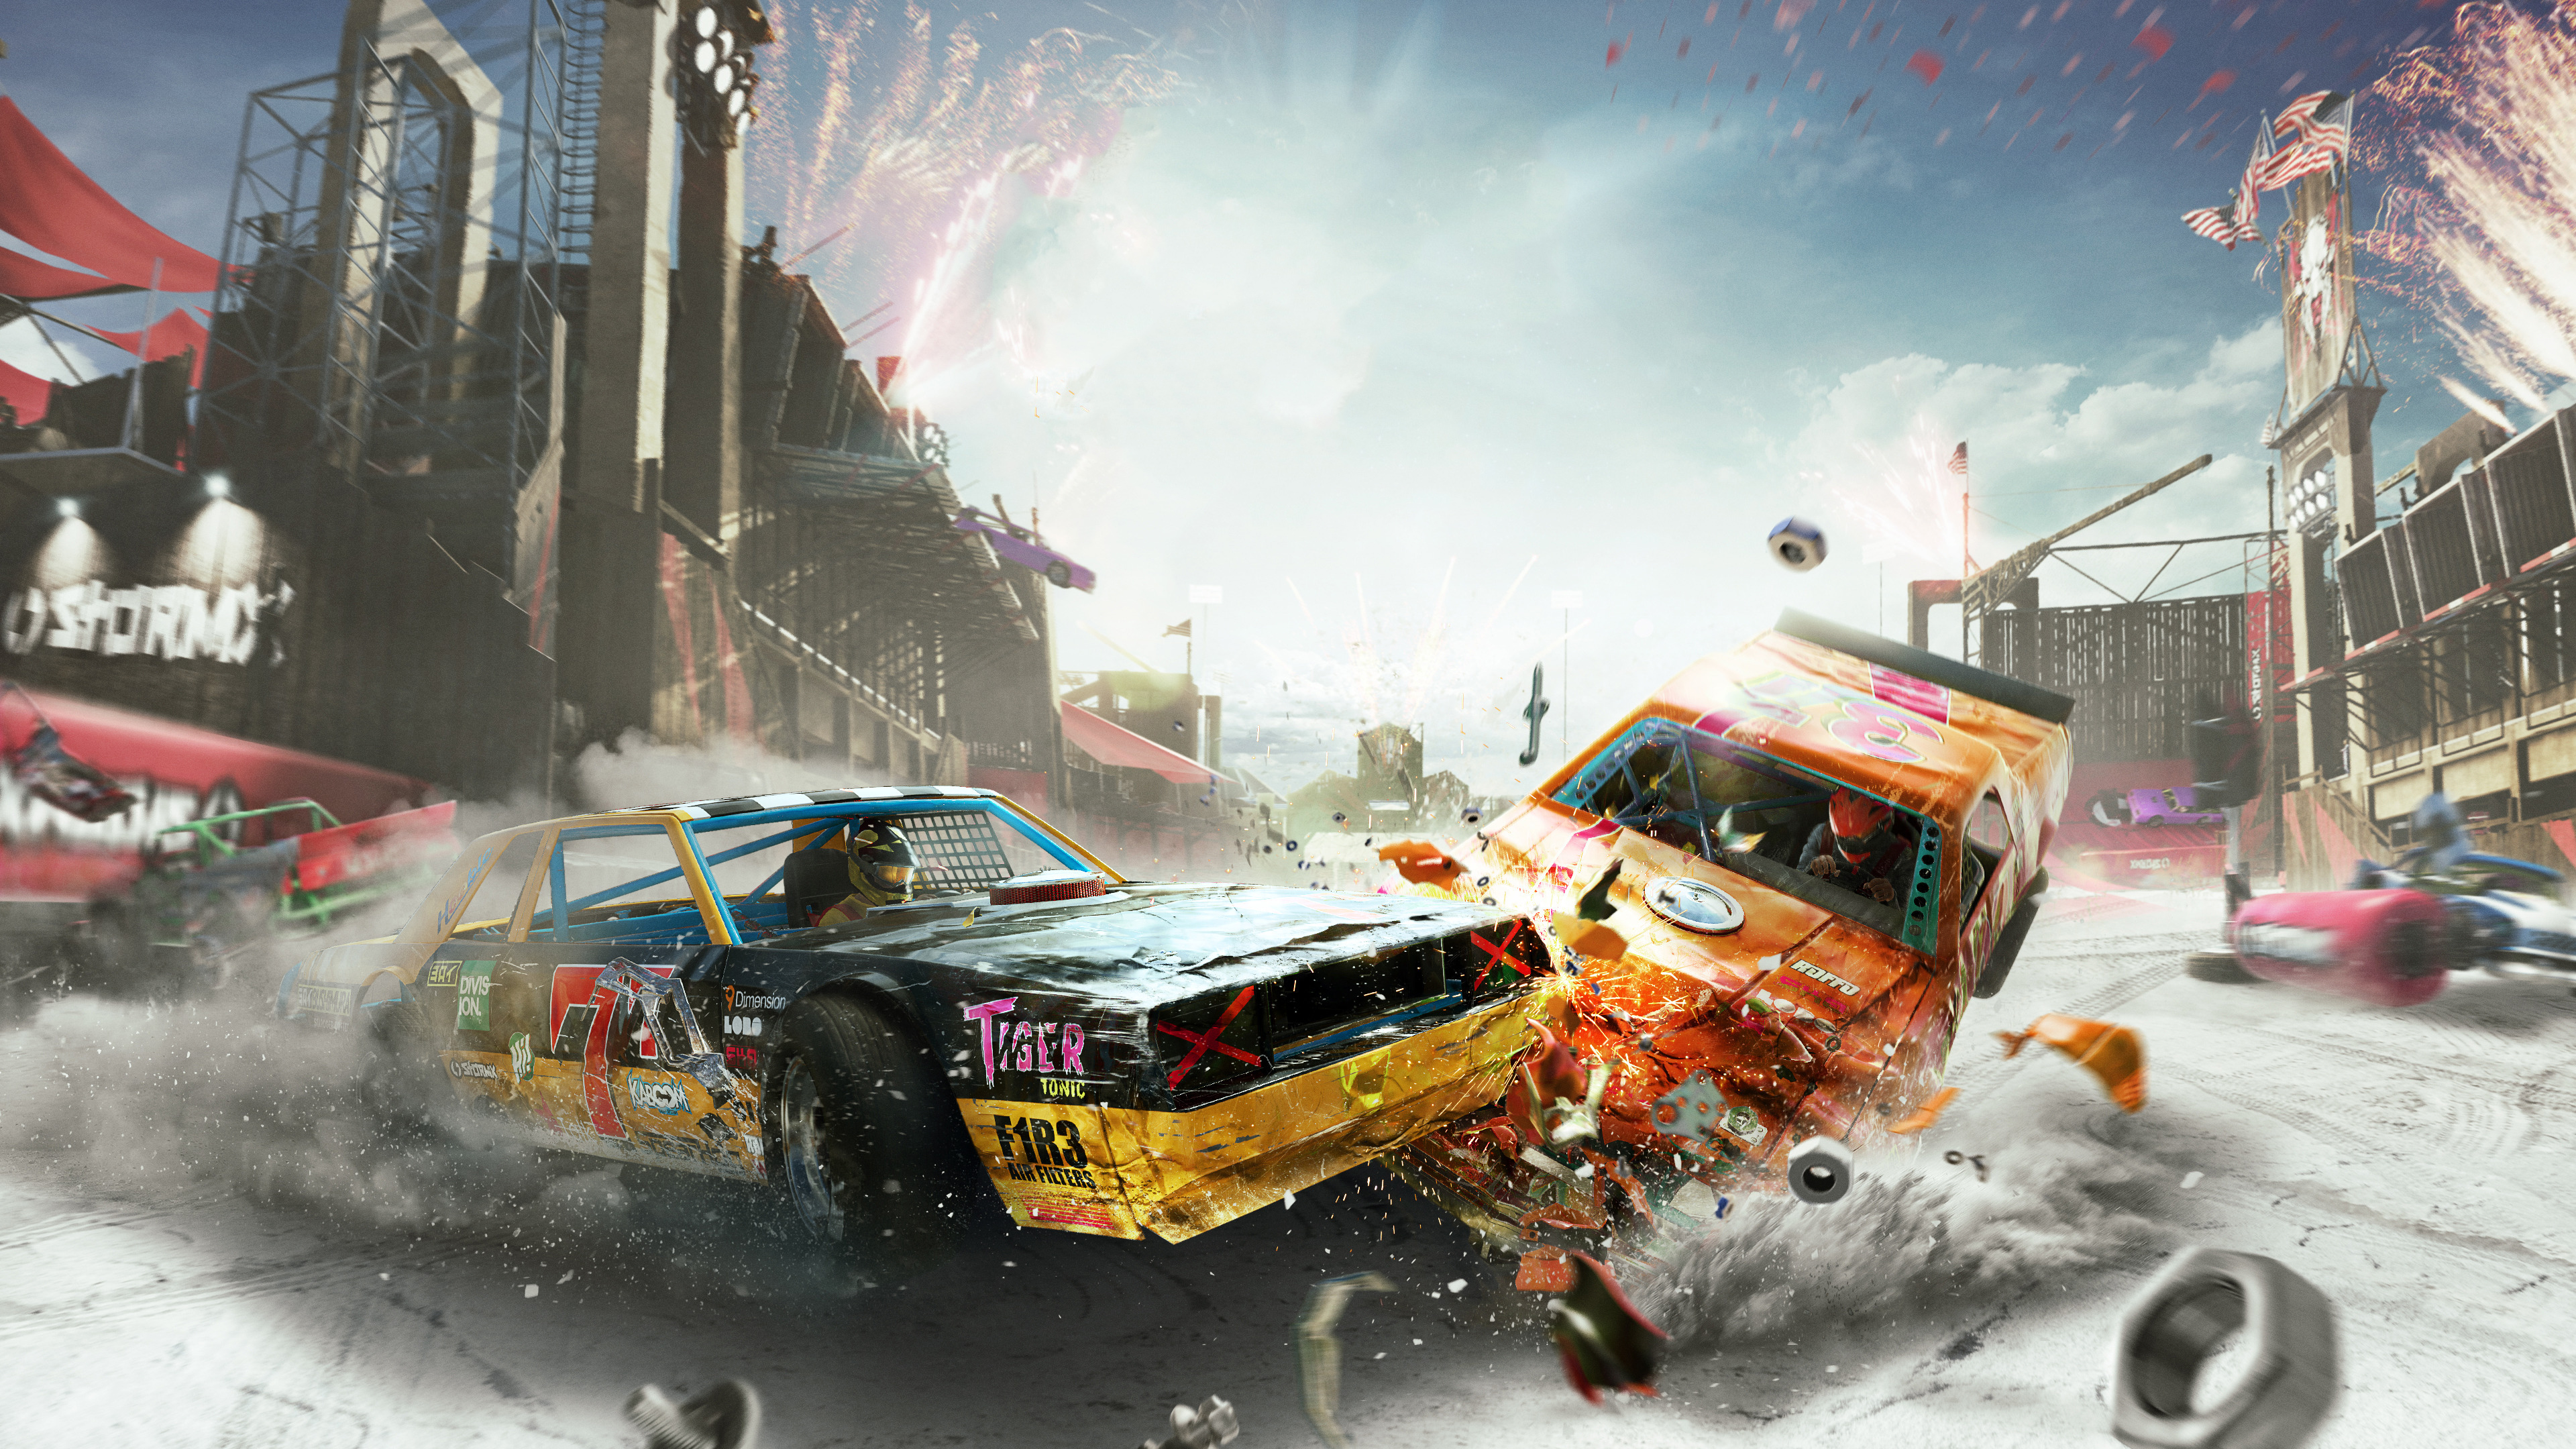 the crew 2 demolition derby 4k 1544287255 - The Crew 2 Demolition Derby 4k - xbox games wallpapers, the crew wallpapers, the crew 2 wallpapers, ps games wallpapers, pc games wallpapers, hd-wallpapers, games wallpapers, 4k-wallpapers, 2018 games wallpapers